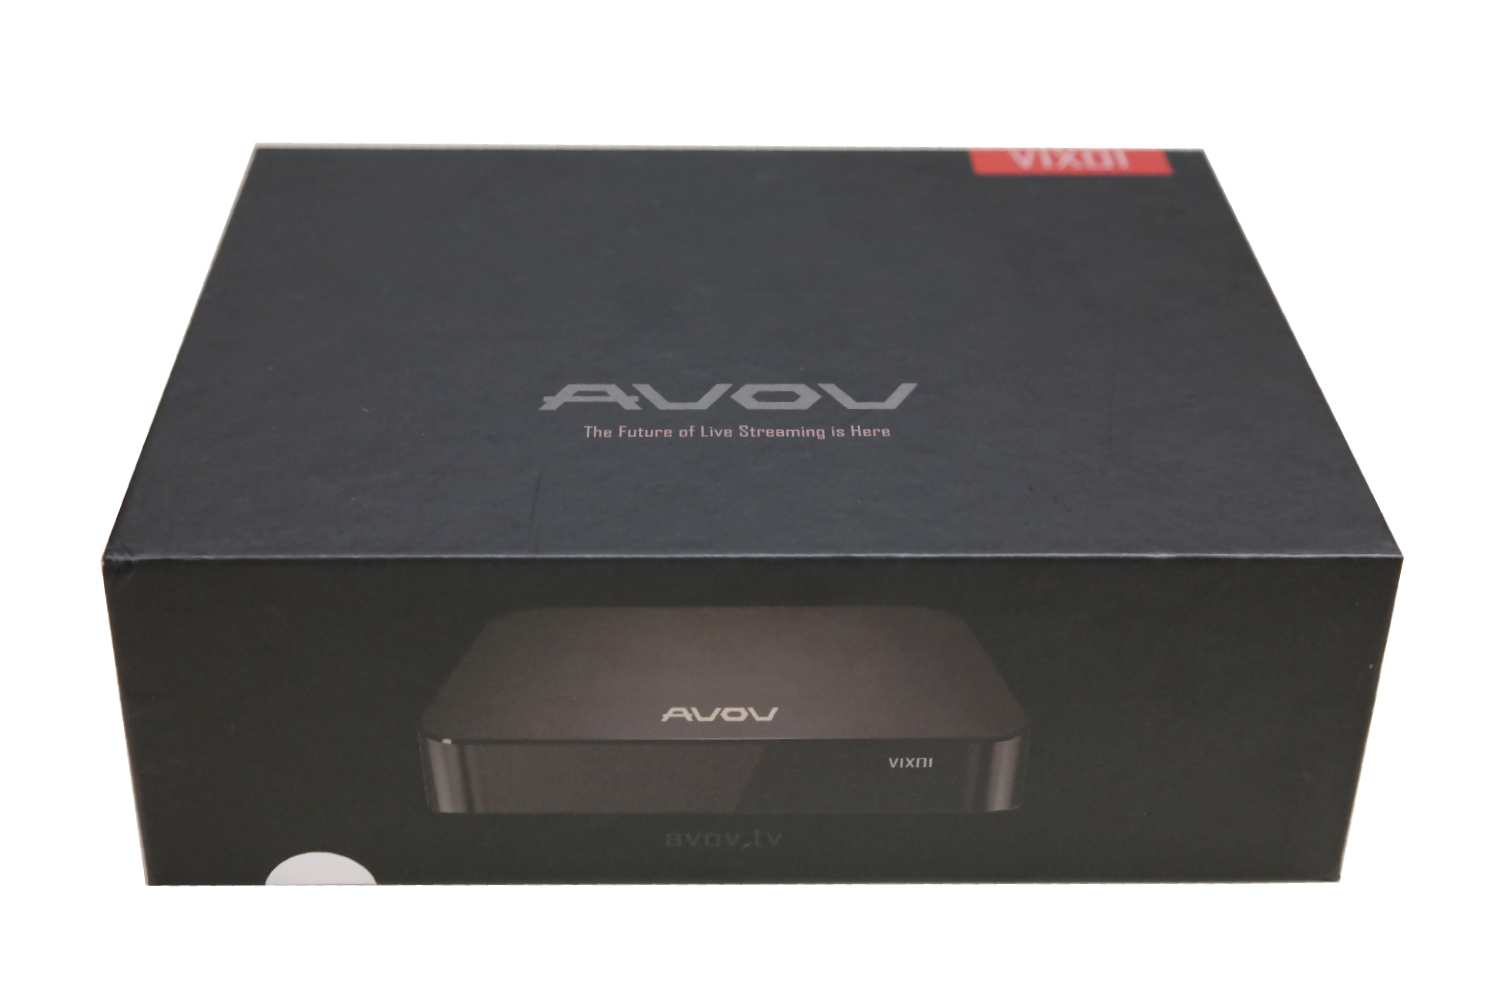 AVOV Technology Reviews - 44 Reviews of Avov tv | Sitejabber